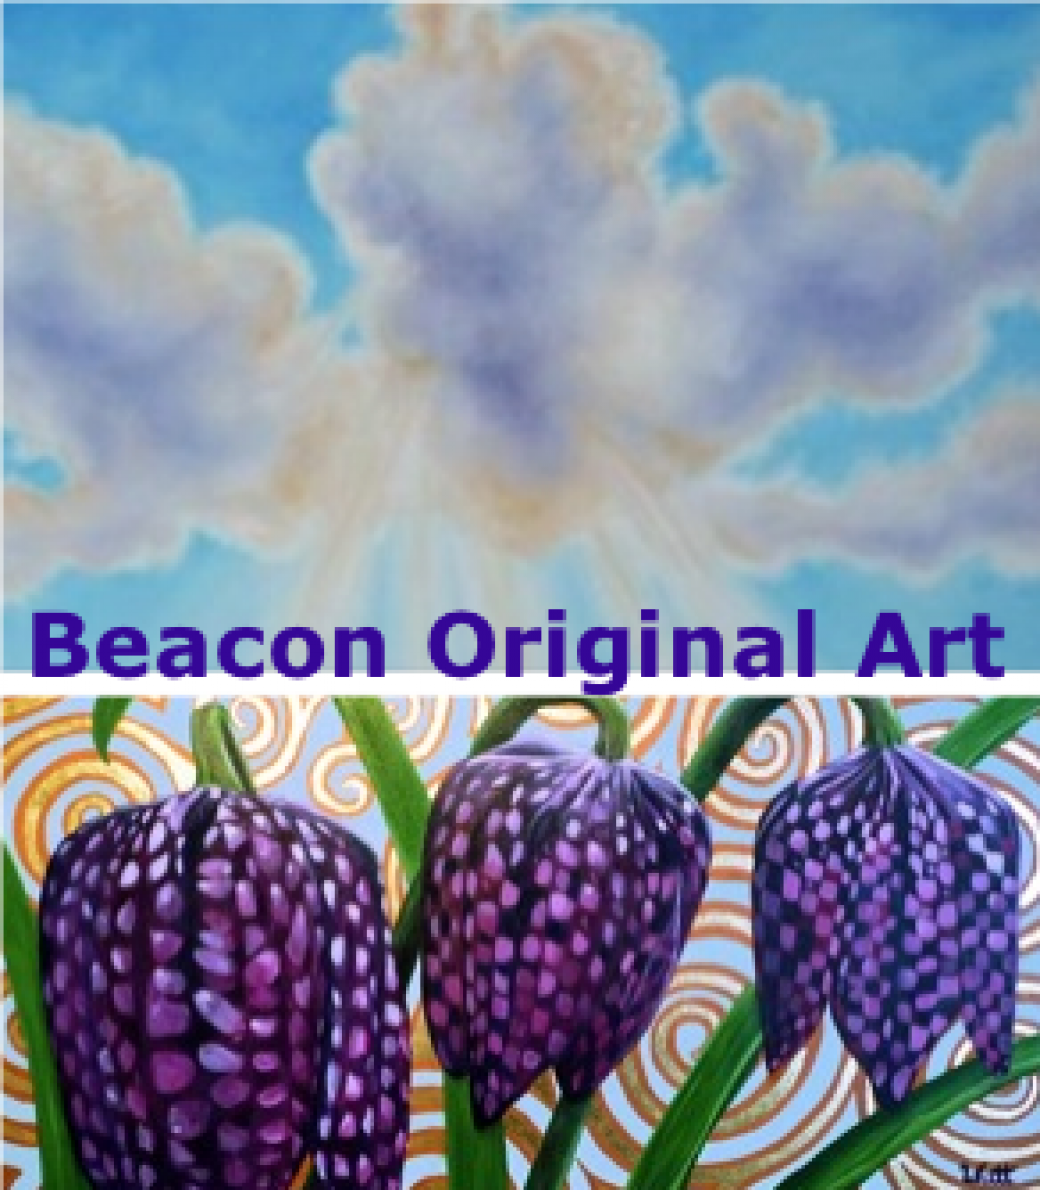 Beacon Original Art - Call for Artist Submissions